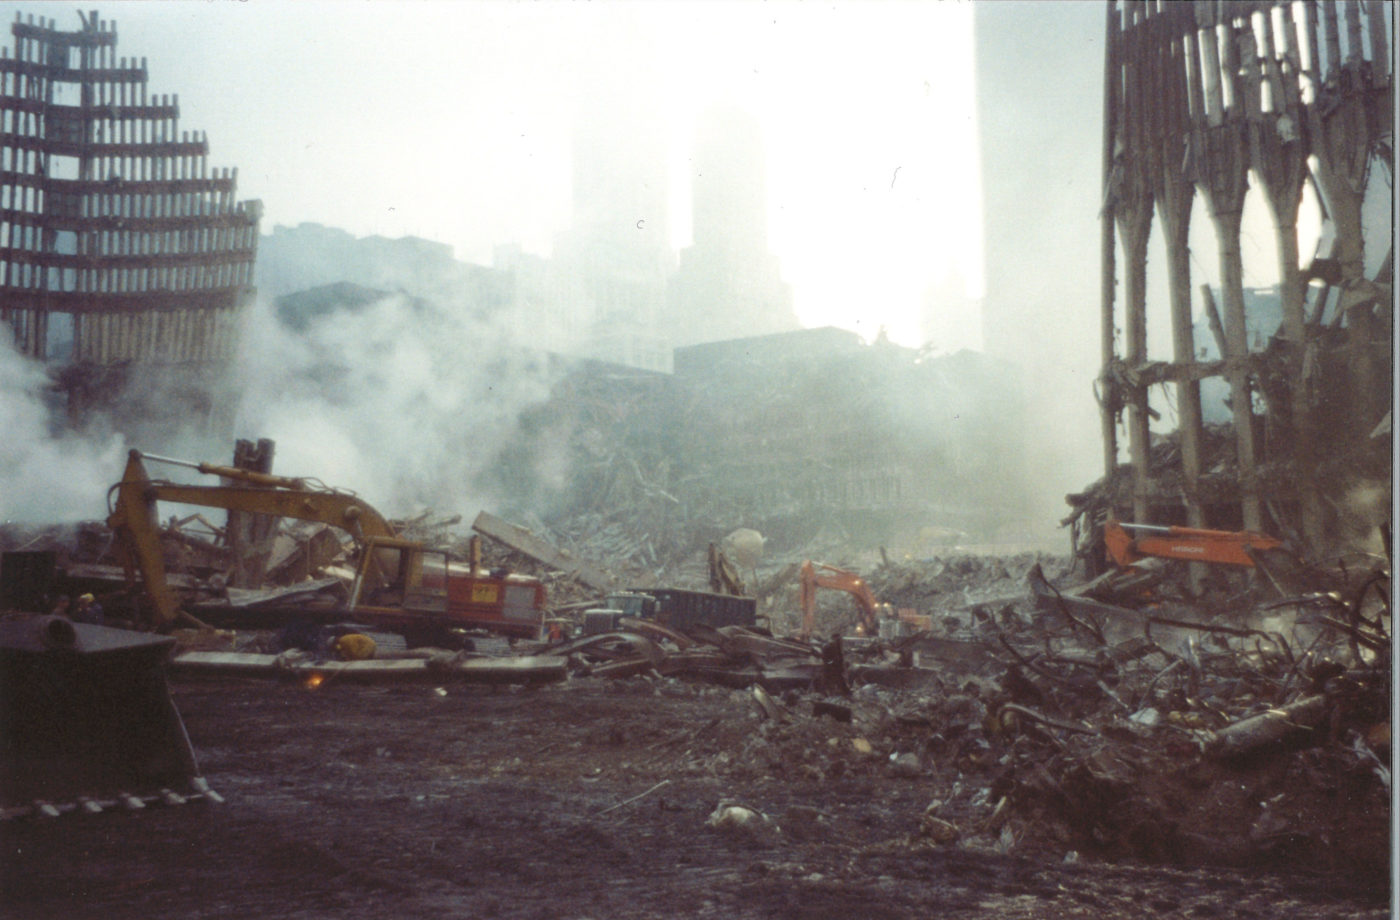 WTC 1 and 2 Exoskeletong with Destroyed WTC5 in the Middle